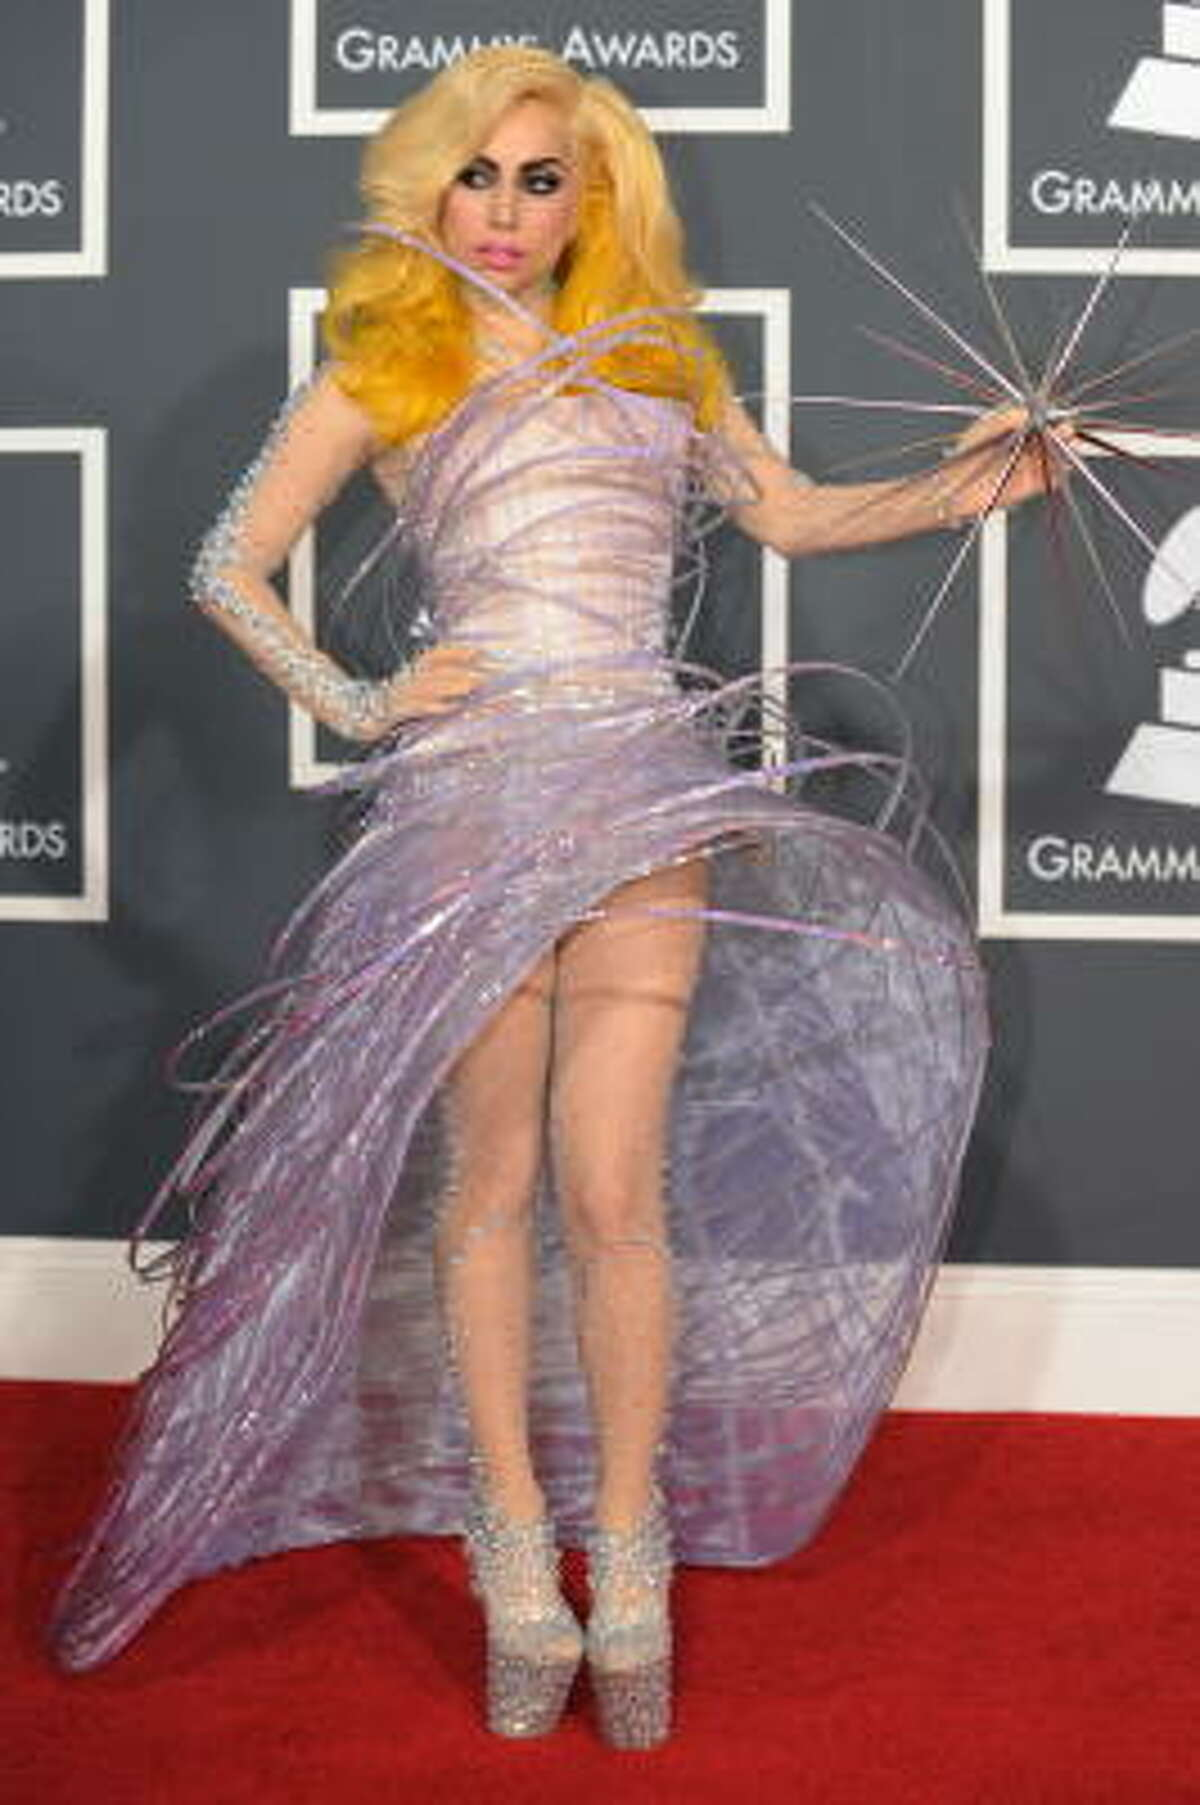 Lady Gaga arrived at the Grammys in this Armani creation.